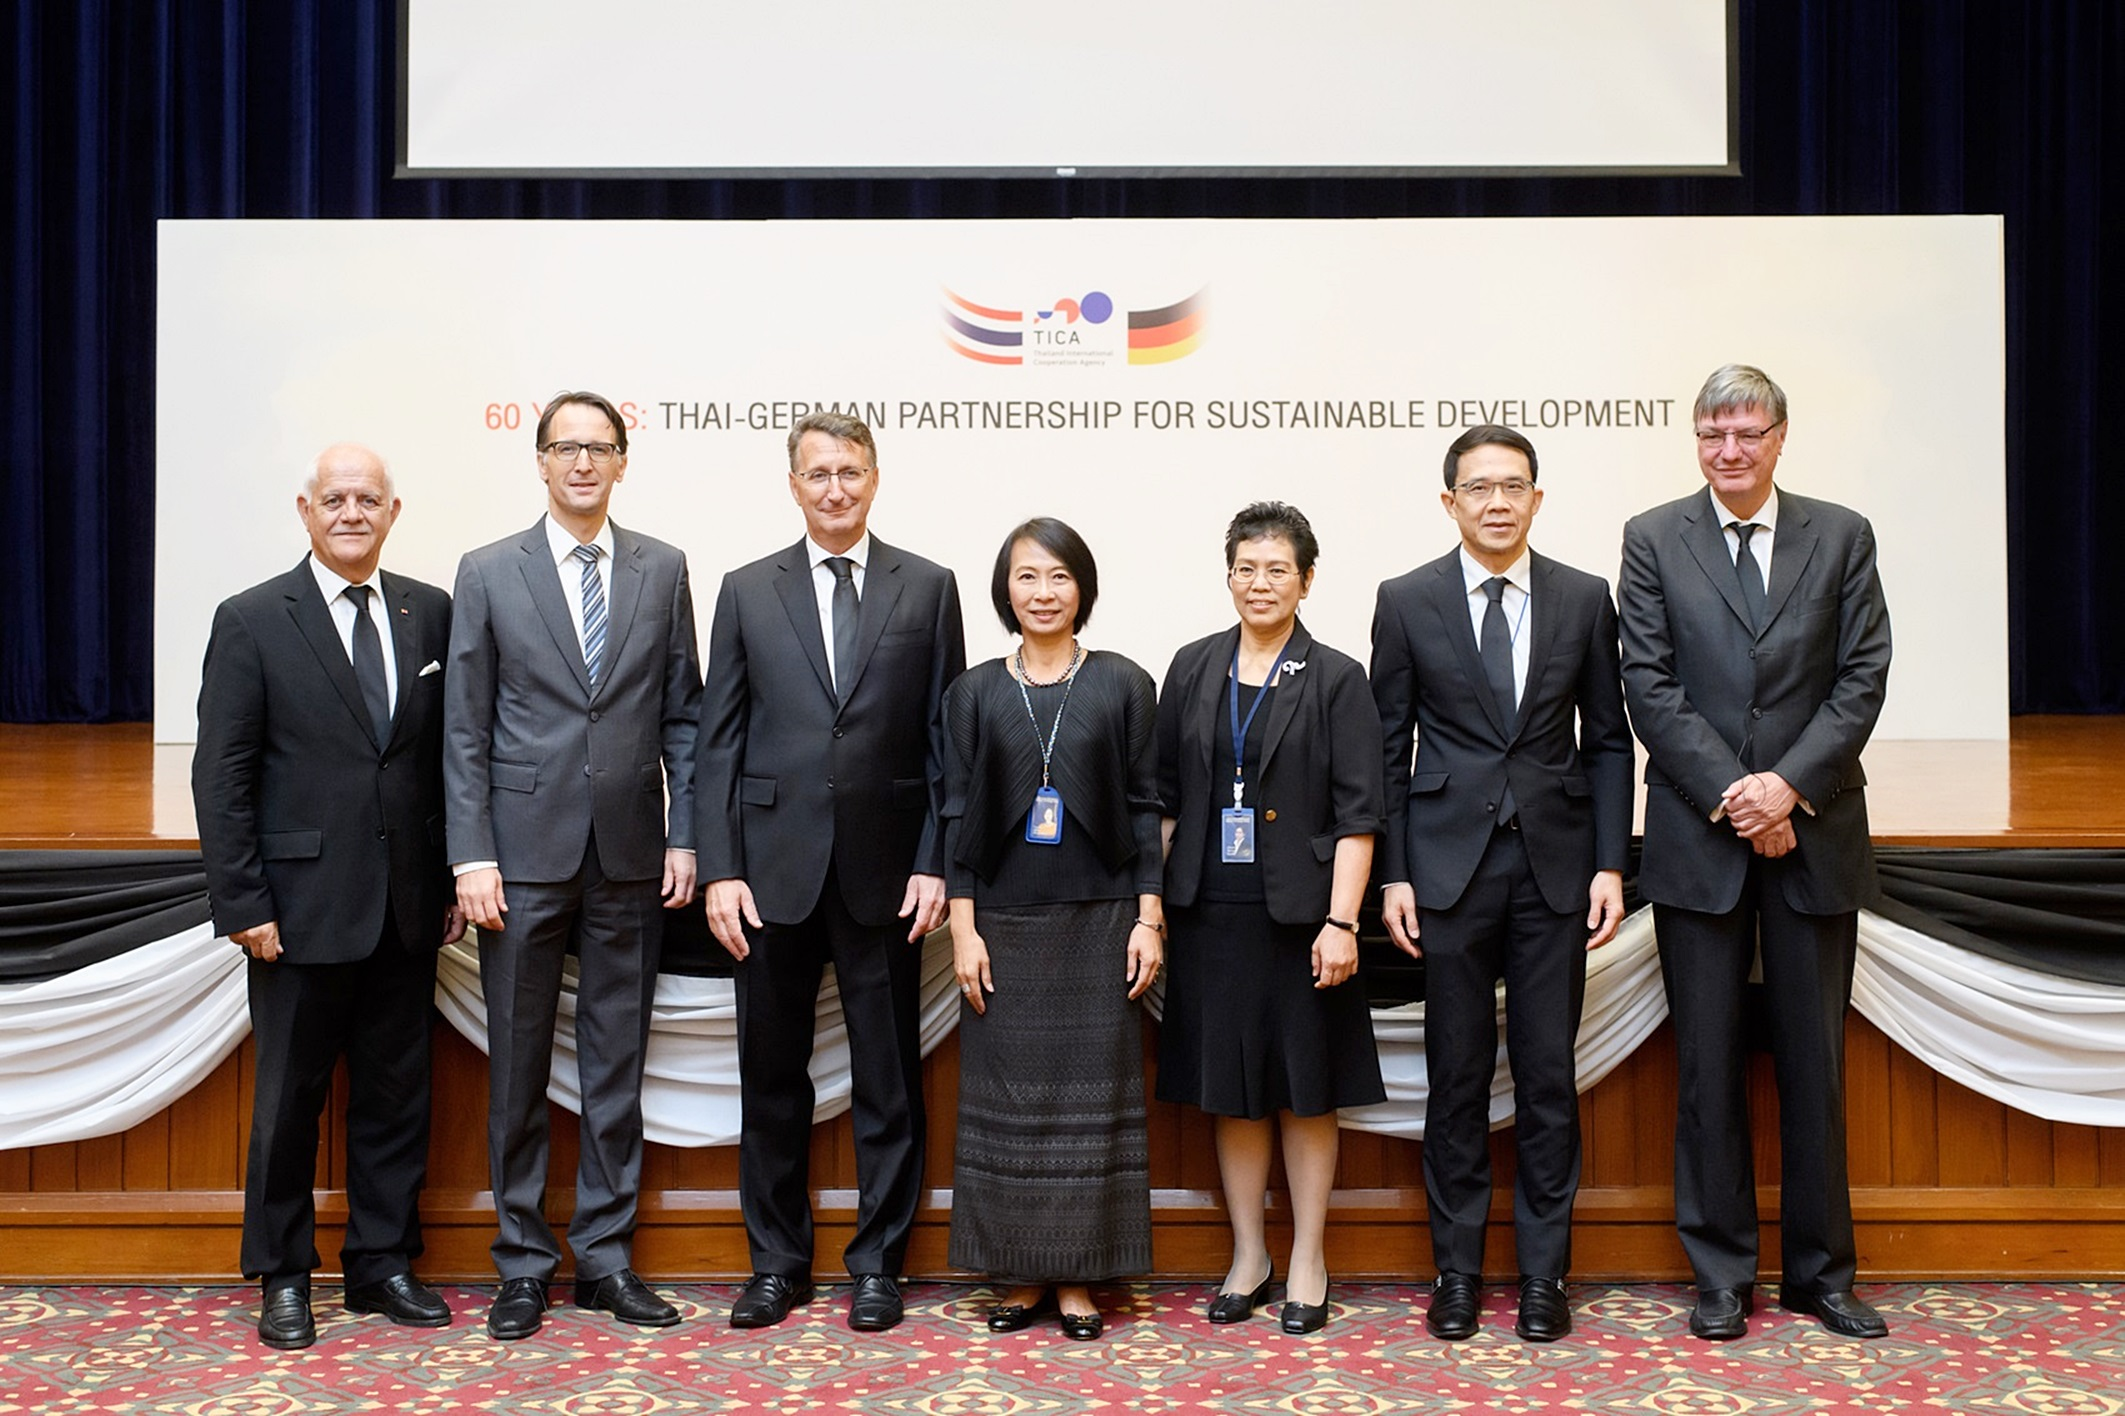 Thailand and Germany Jointly Celebrate 60 Years of Successful Cooperation for Sustainable Development